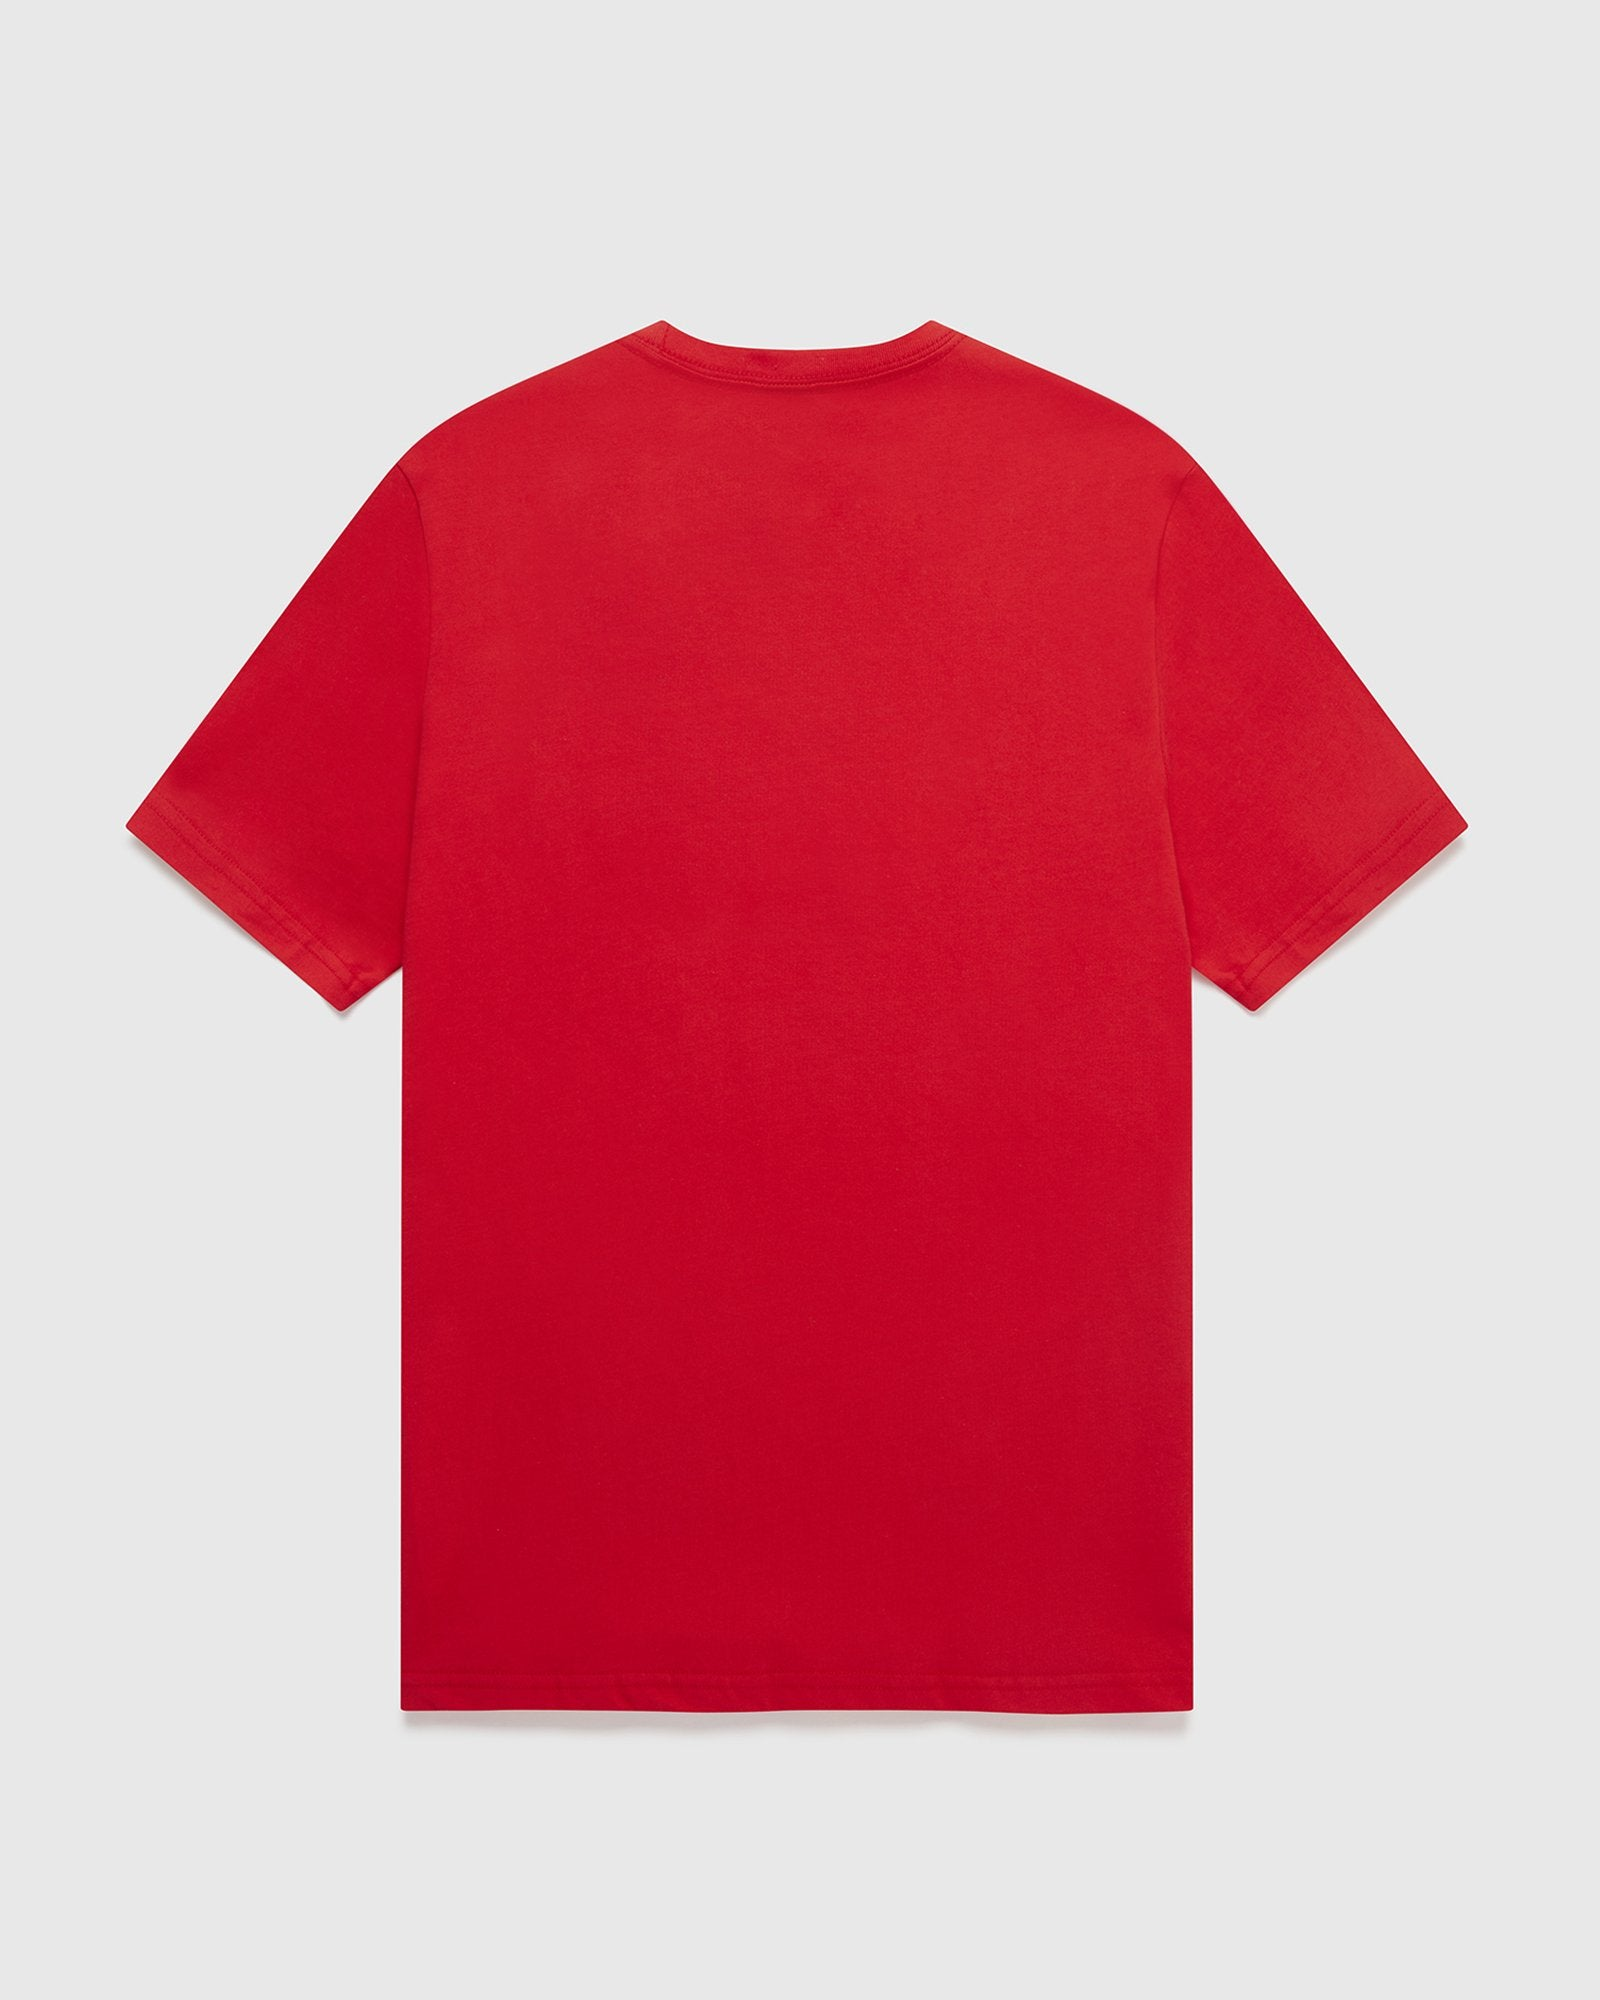 CANADA SPORT T-SHIRT - RED IMAGE #2